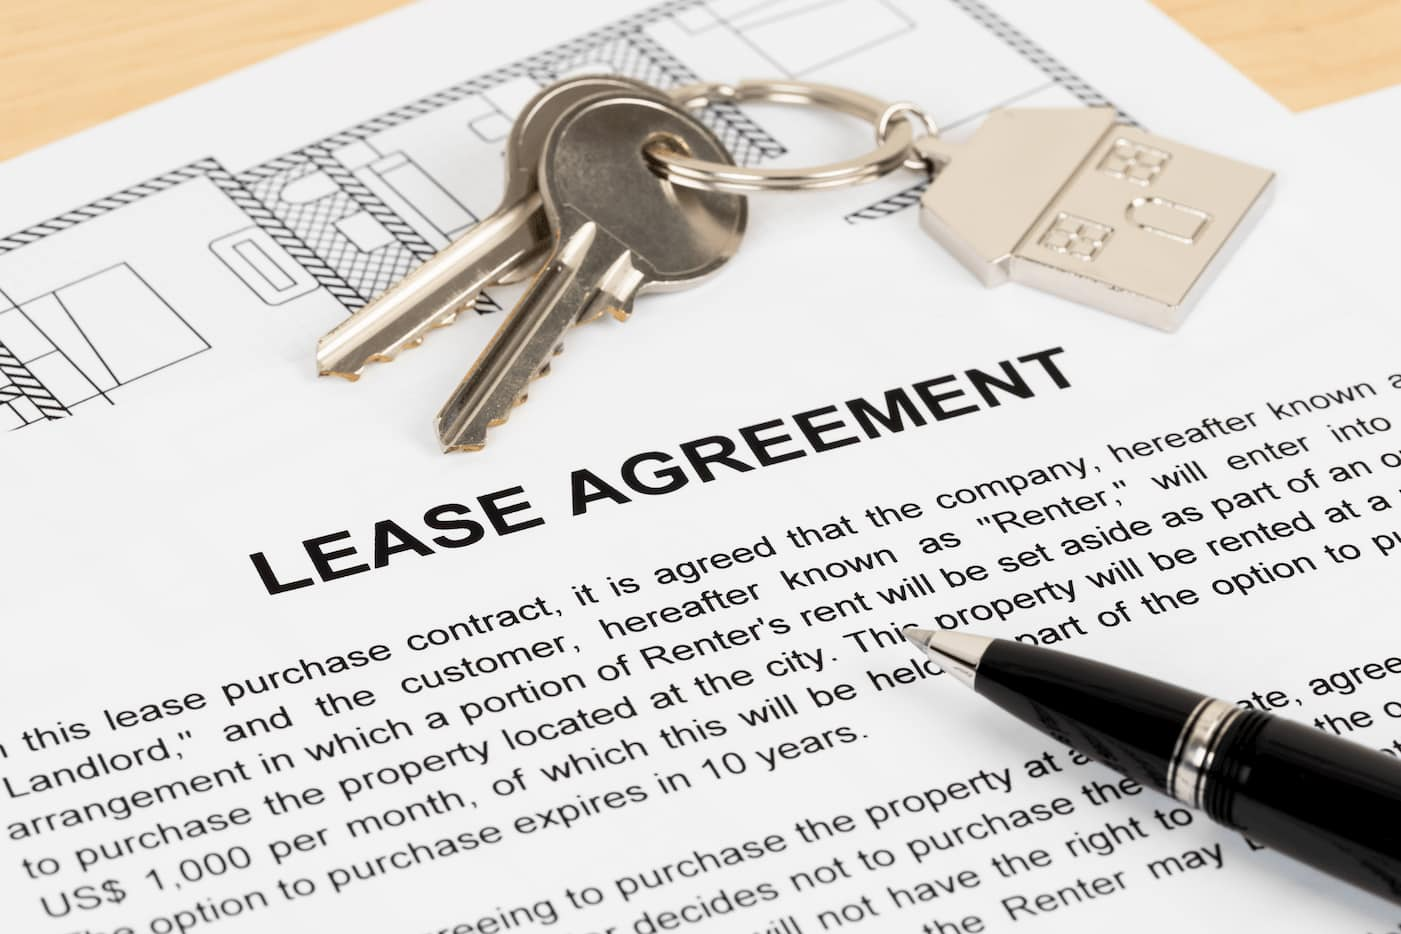 Include animals in rental lease agreements